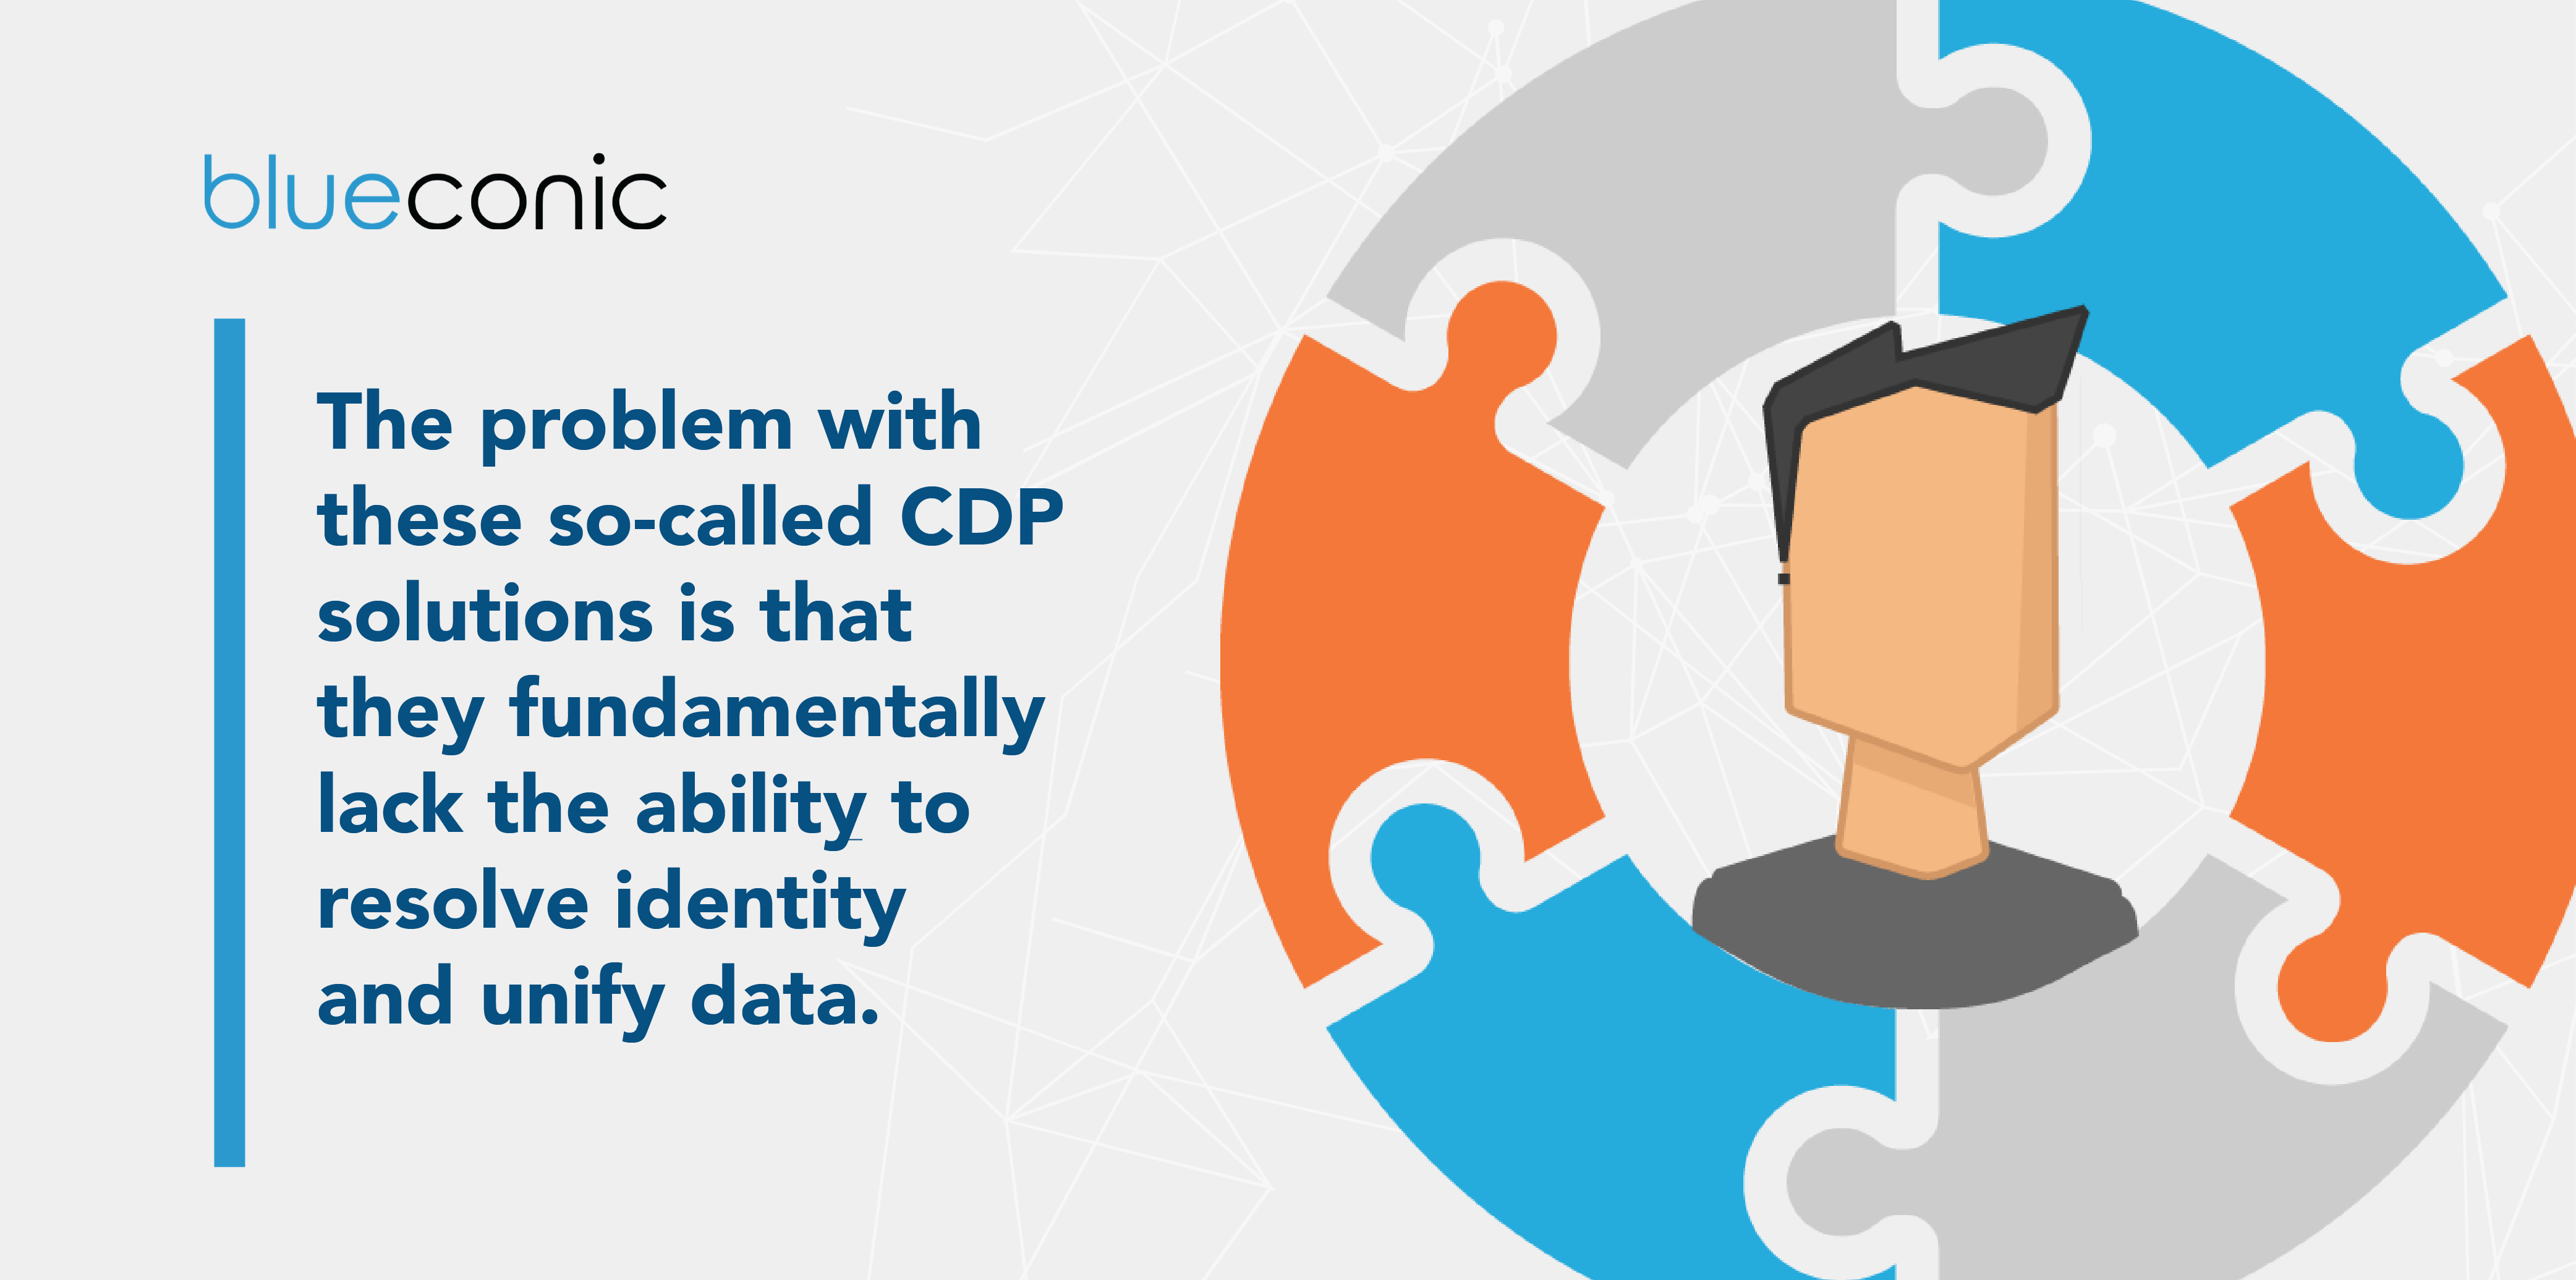 The problem with these so-called CDP solutions is that they fundamentally lack the ability to resolve identity and unify data.